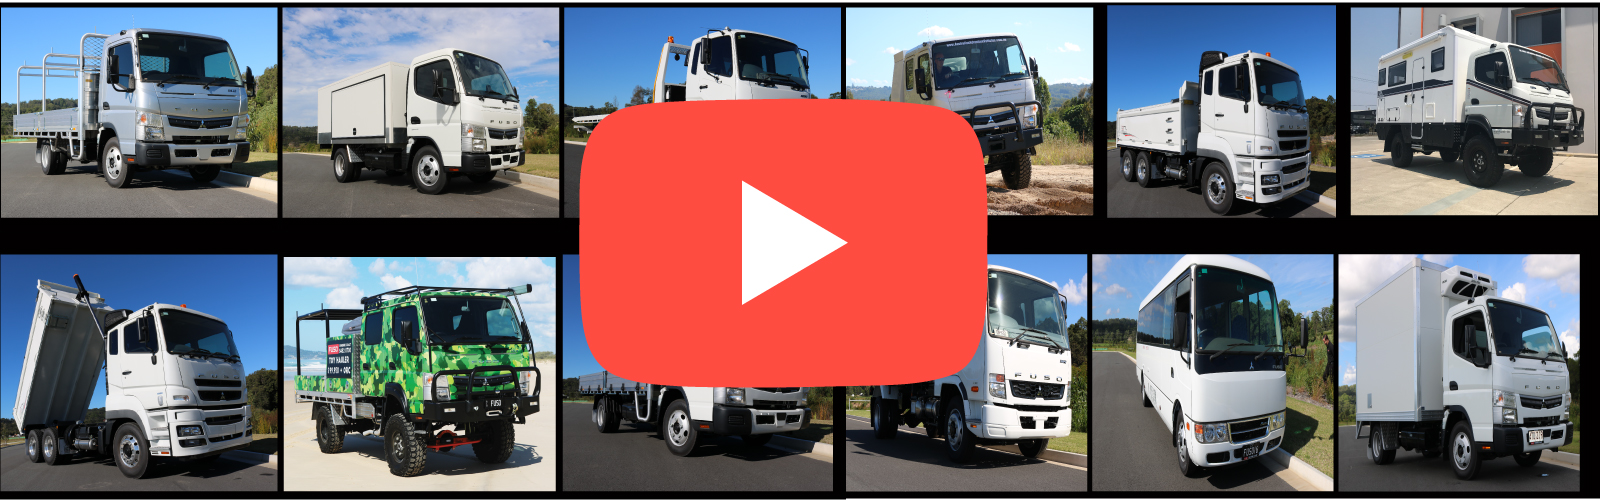 CHECK OUT OUR TRUCK LOADS OF STOCK VIDEO